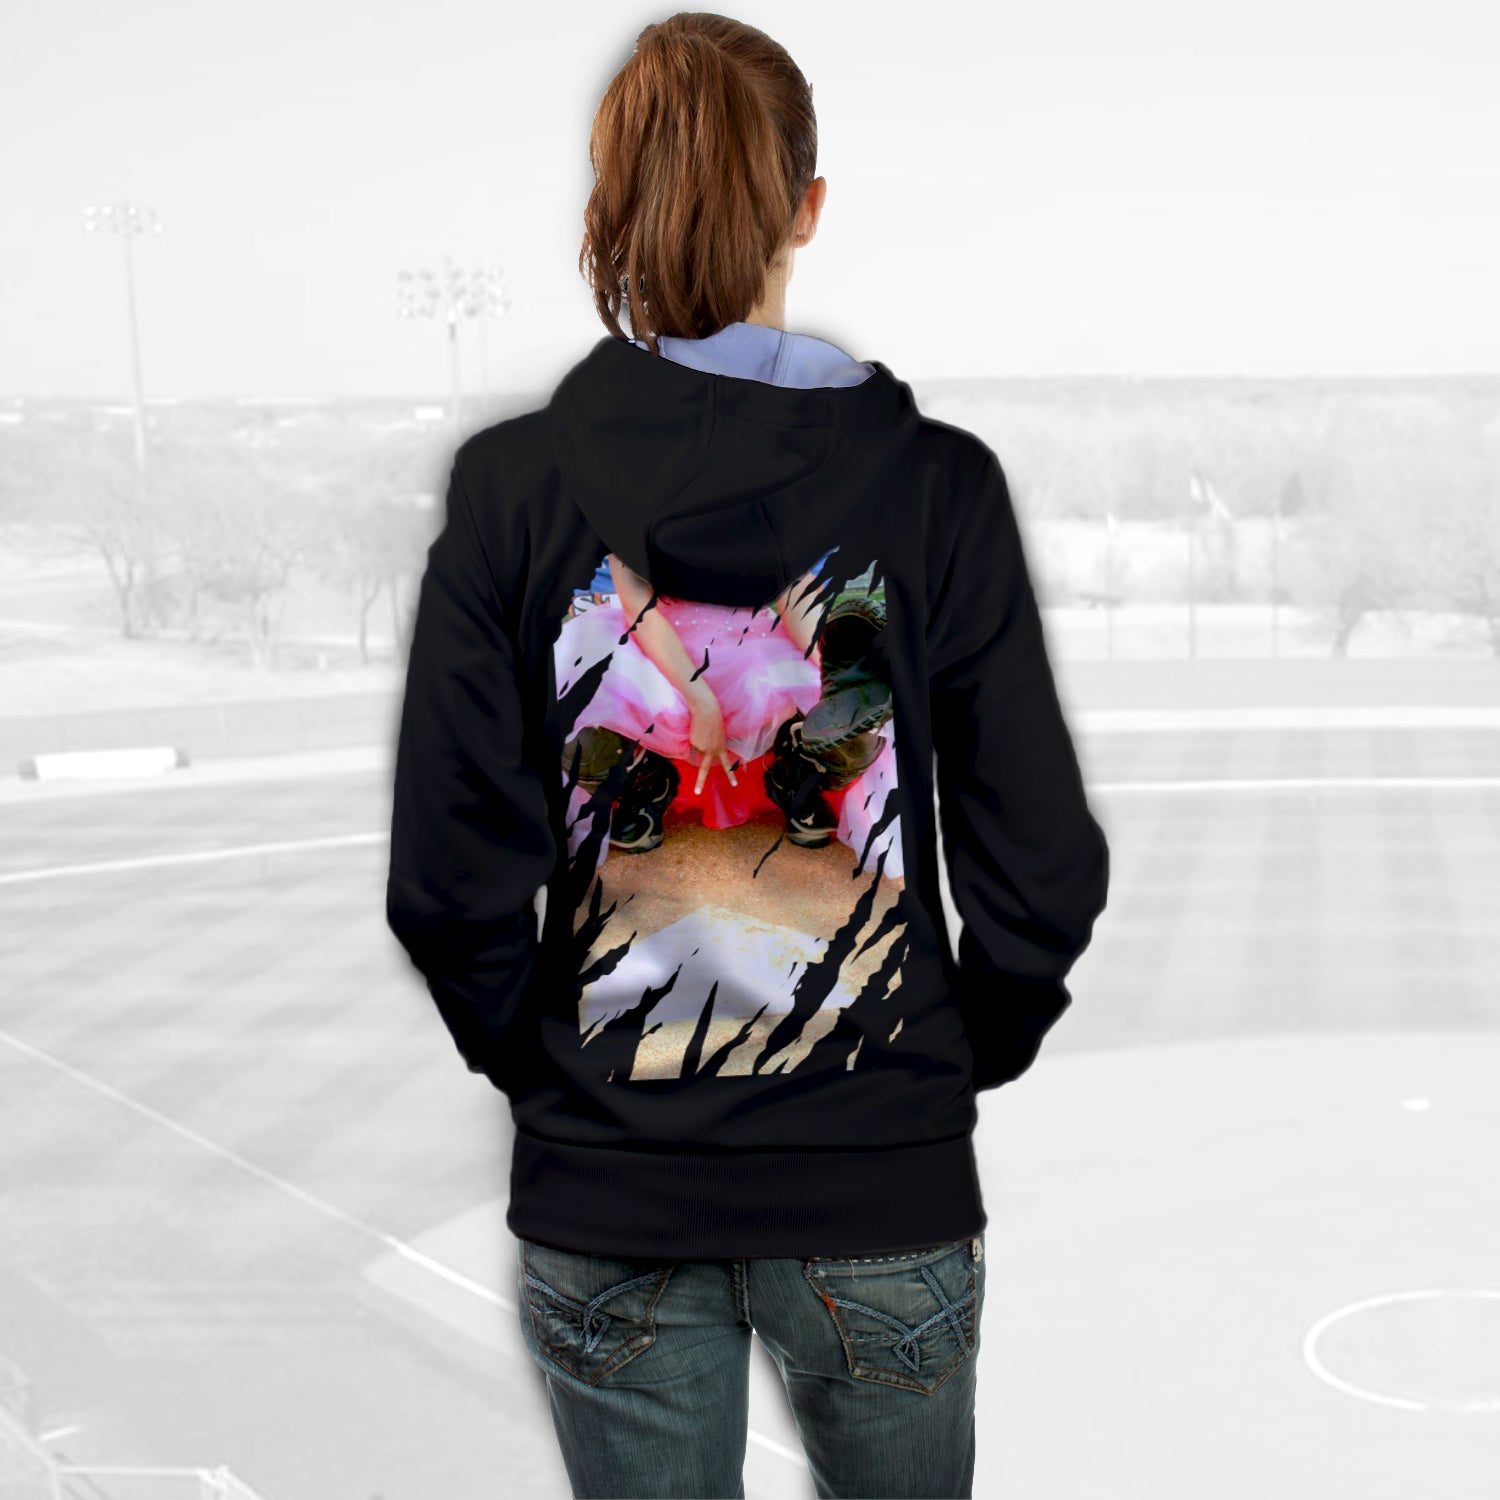 Unisex Hoodies for Softball lovers - Softball Princess - designfullprint